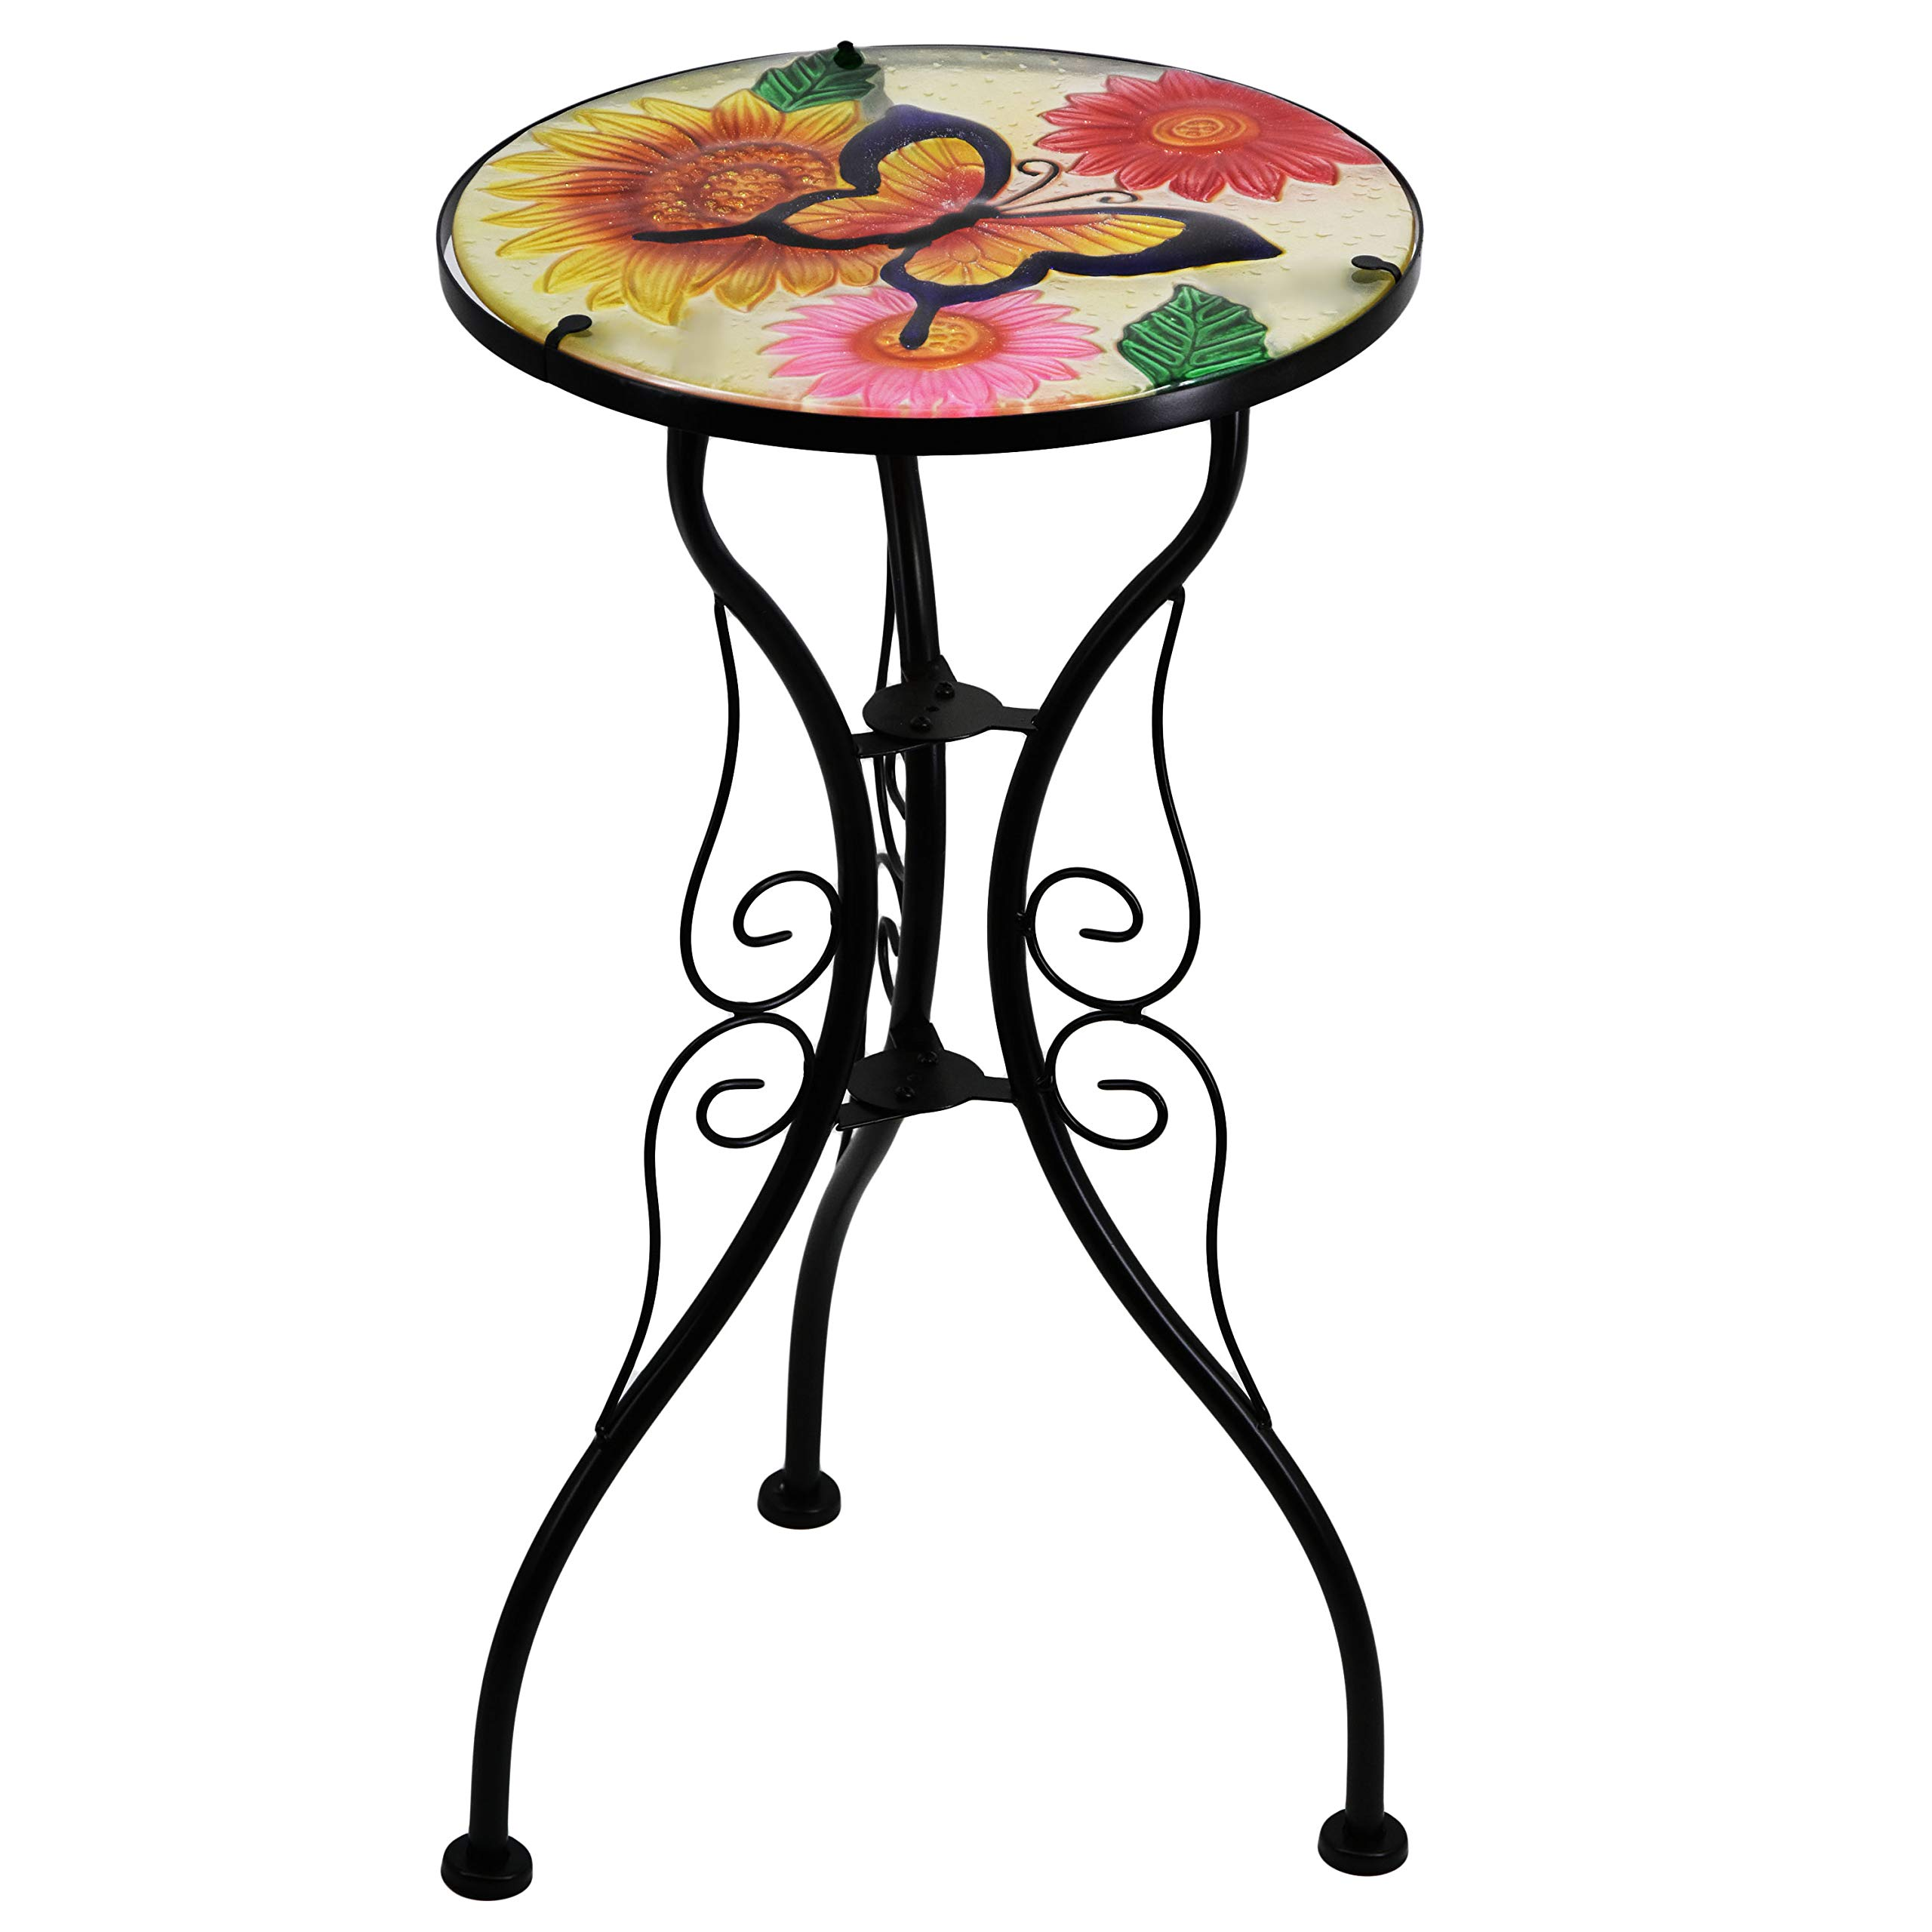 Flowers /& Butterfly Simple Home /& Living Mosaic Design Iron//Glass Garden Patio Flower Plant Table//Stand